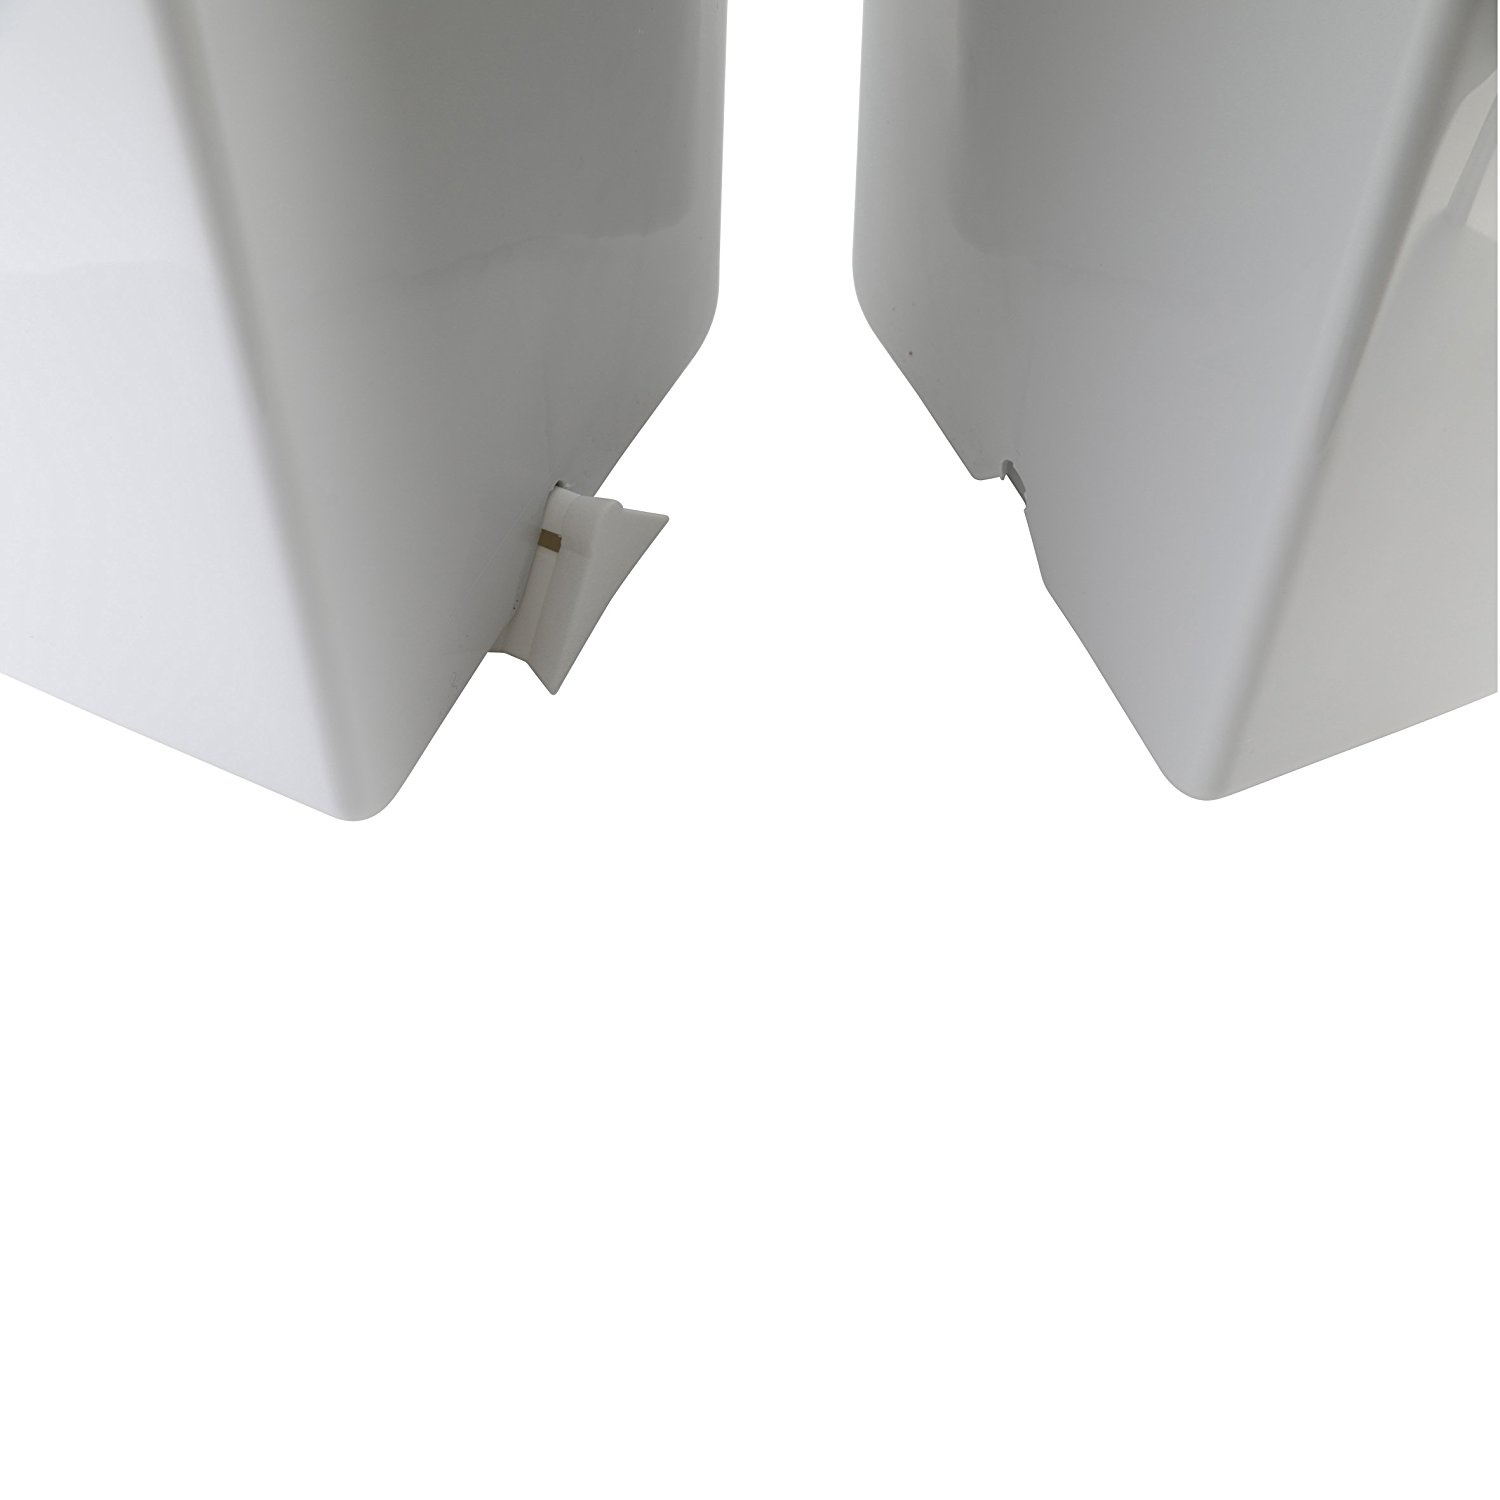 2 x 23 L Twin Double Compartment Bin for Waste Separation Fingerprint Proof Plastic Trash Can axentia Double Recycling Waste Bin approx Office Indoor//Outdoor Use Garden  Rubbish Disposal Dual Dustbin Grey 33 x 43 x 51 cm